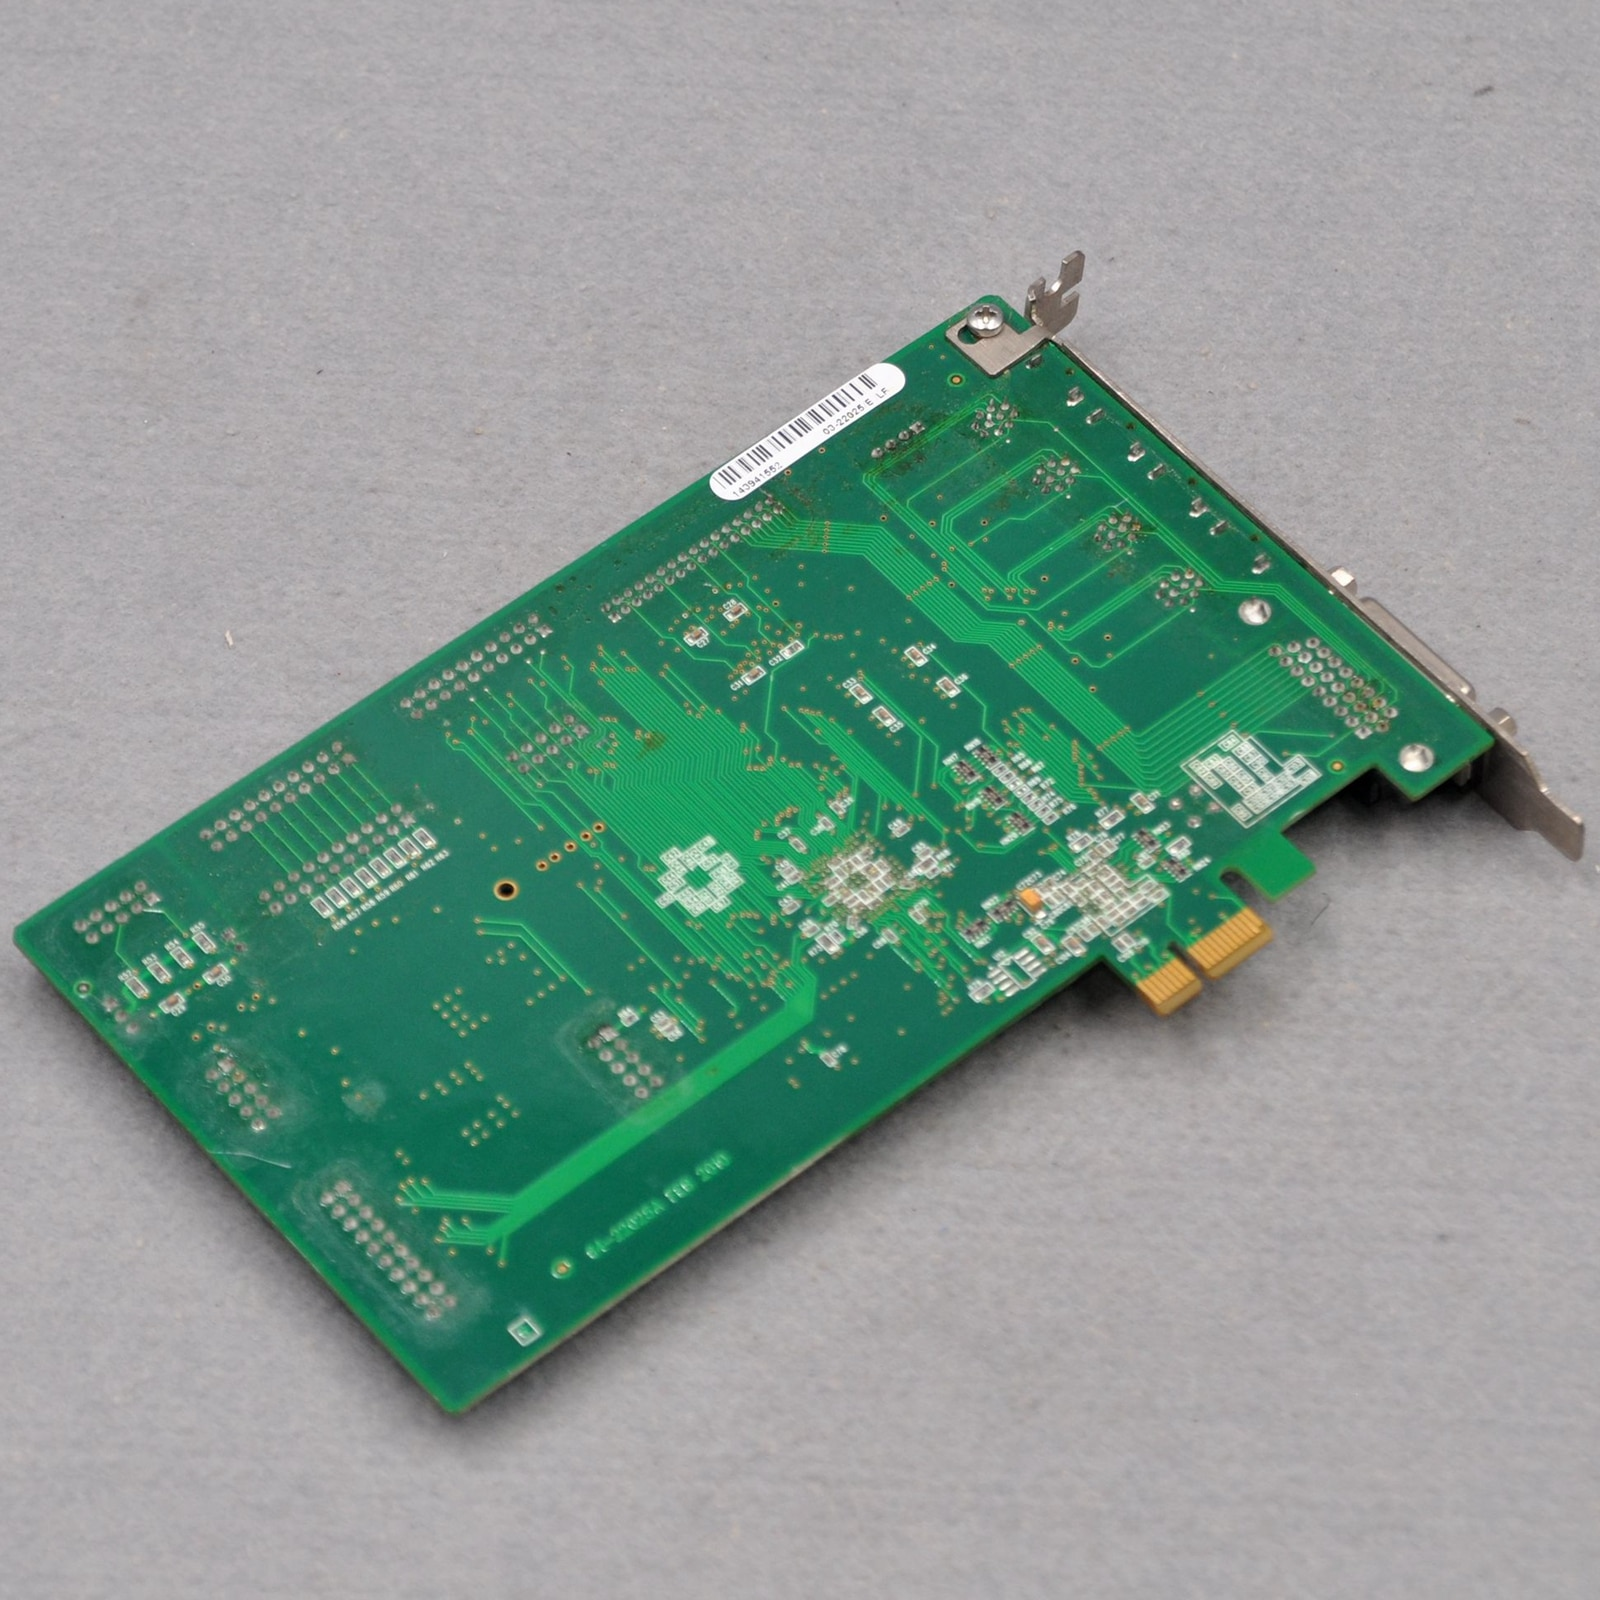 64-22025A FEB 2010 Industrial Capture Card PCI Card enlarge